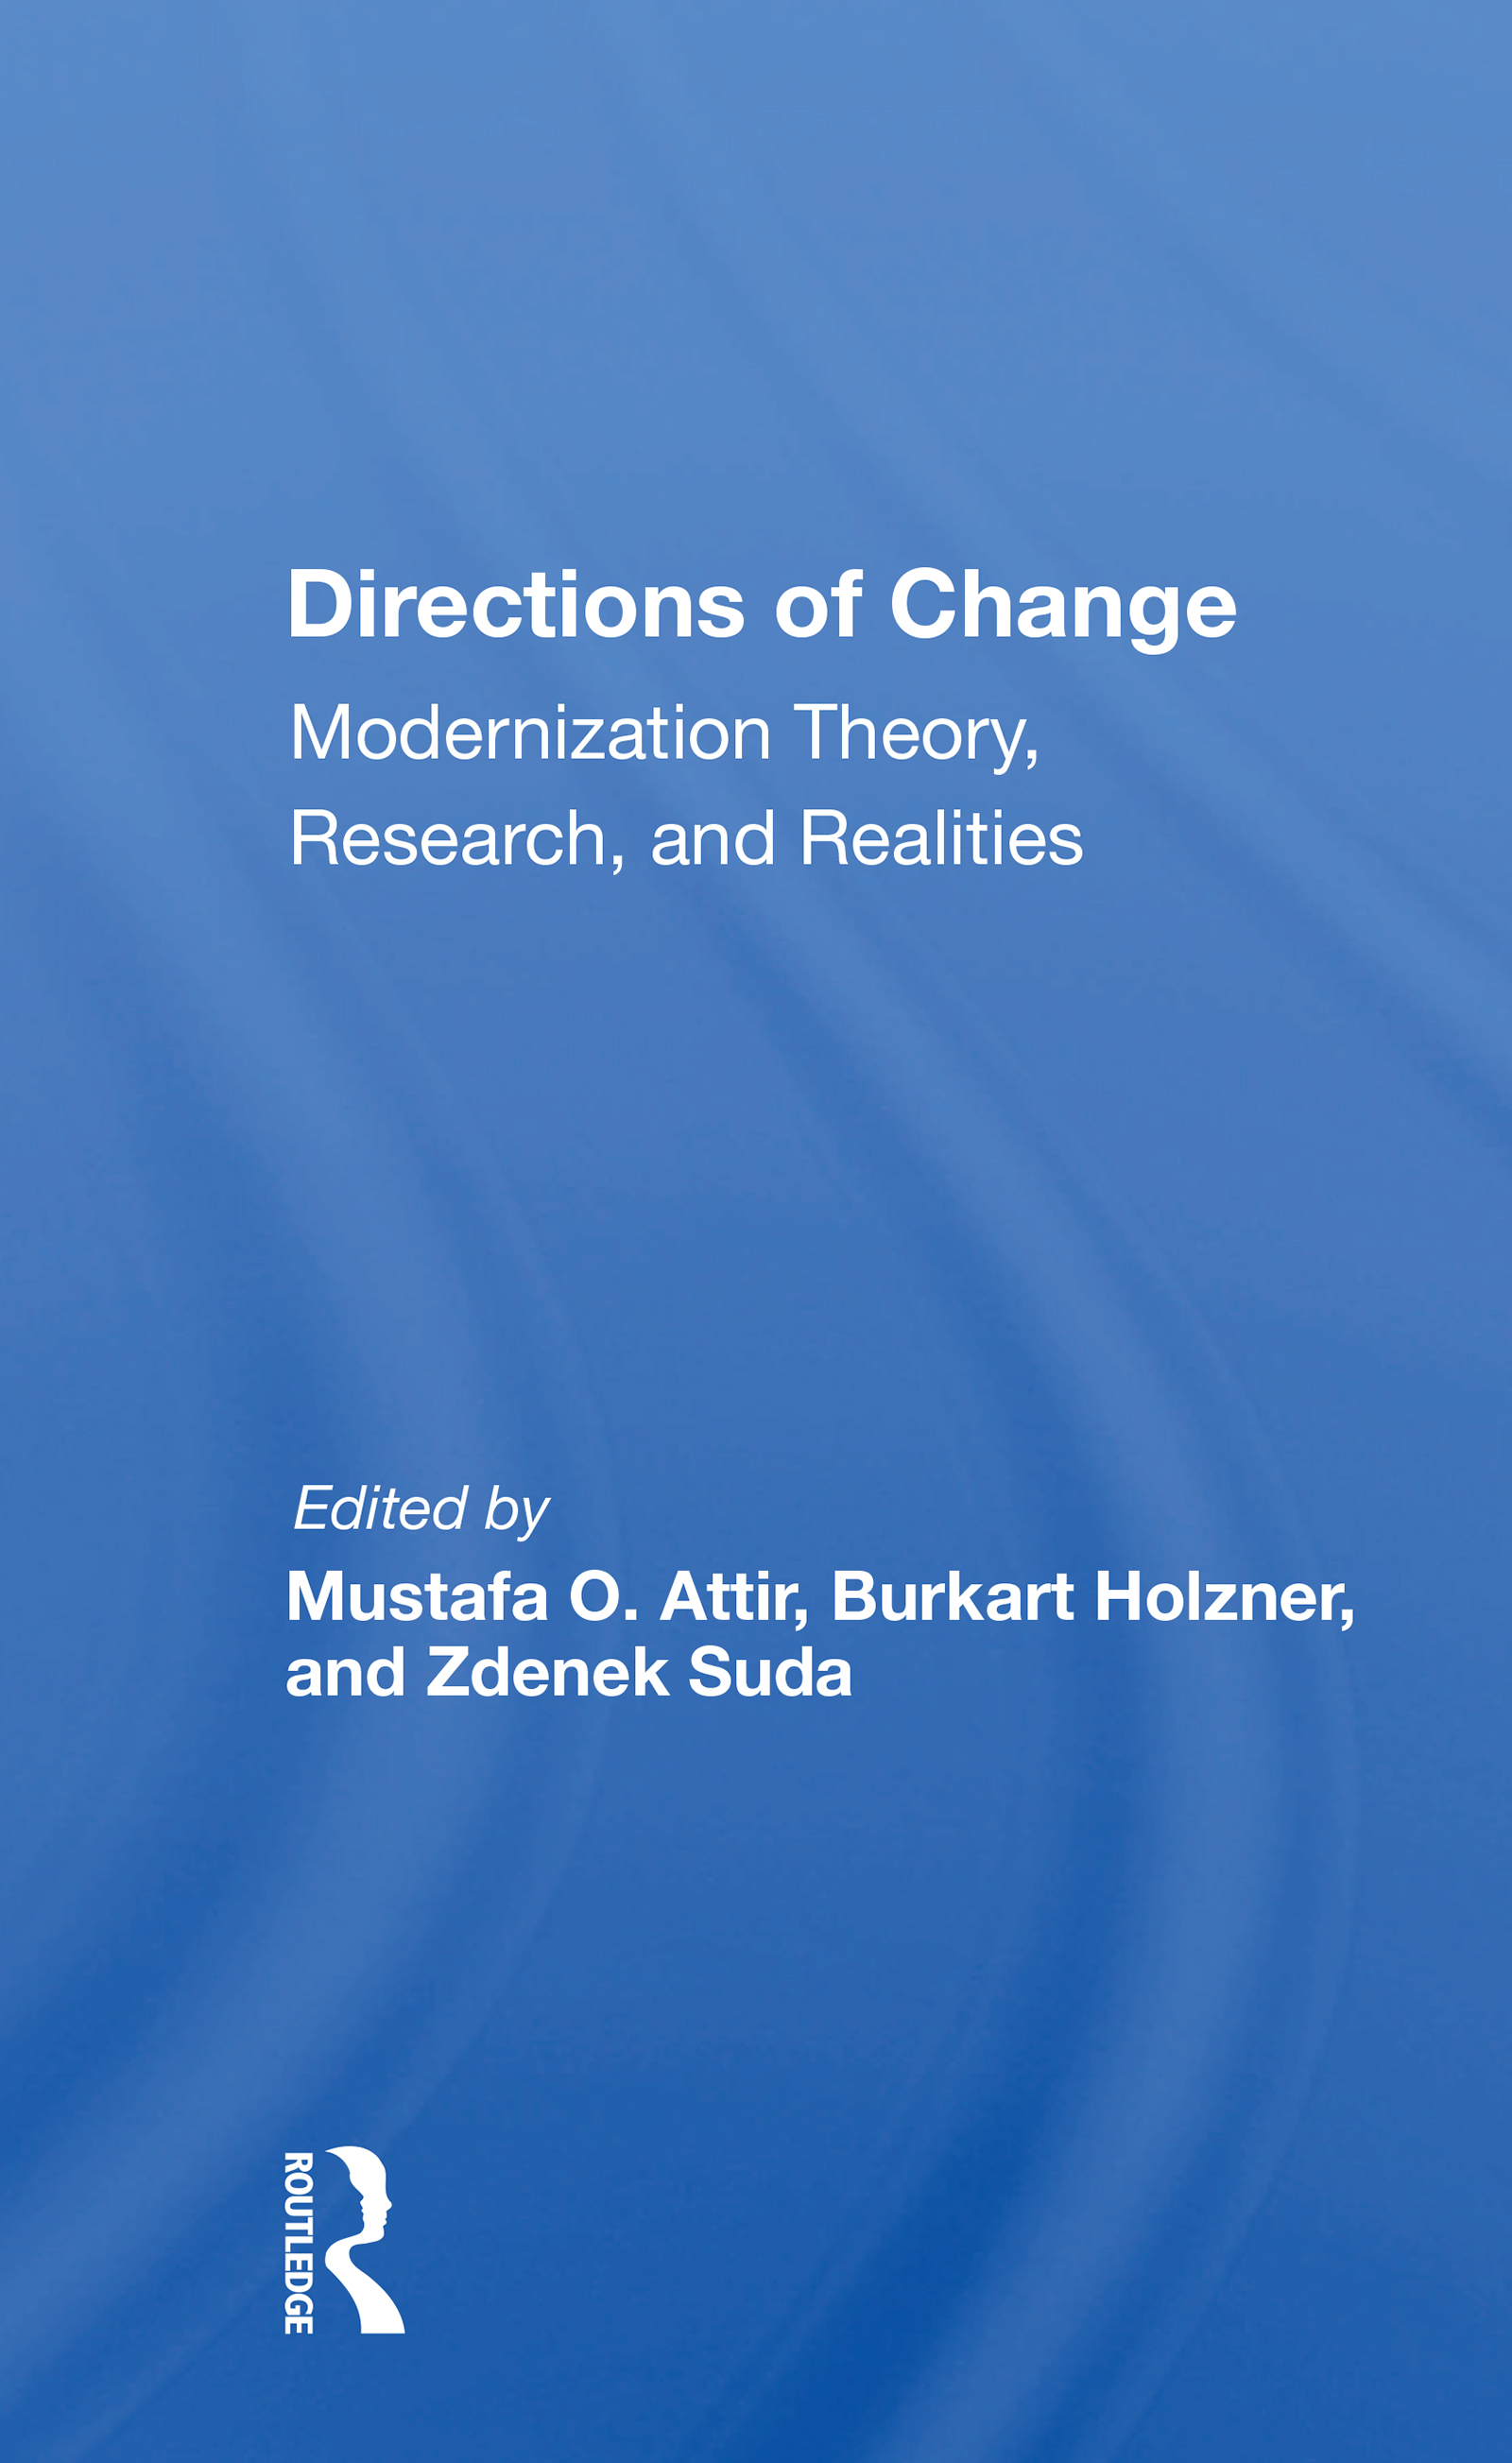 Directions of Change